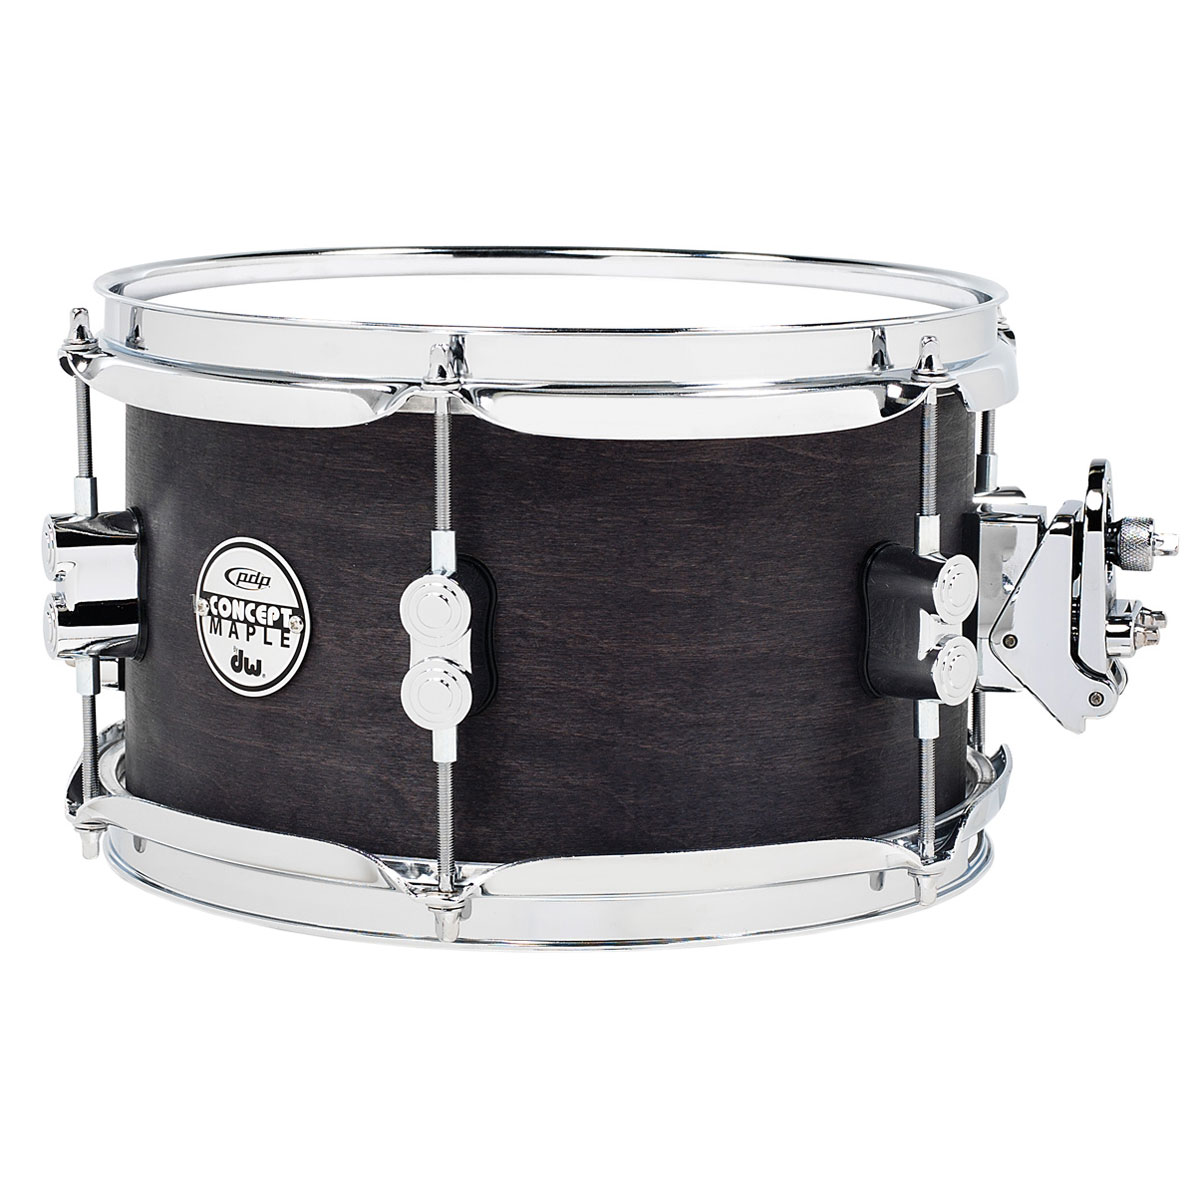 "PDP 6"" x 10"" Concept Black Wax Maple Snare Drum"